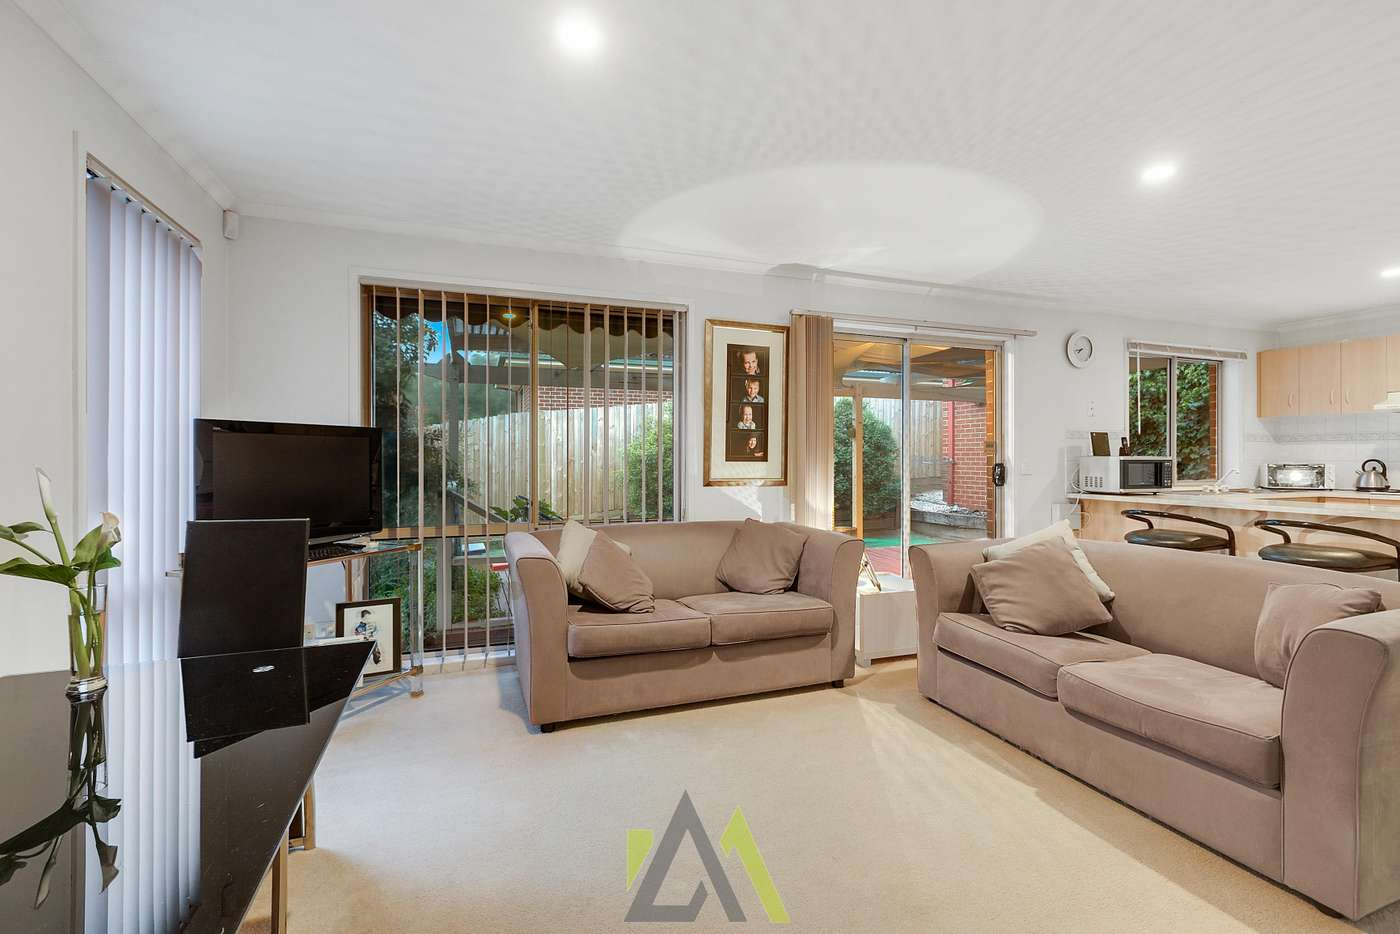 Sixth view of Homely house listing, 53 Lexton Drive, Langwarrin VIC 3910